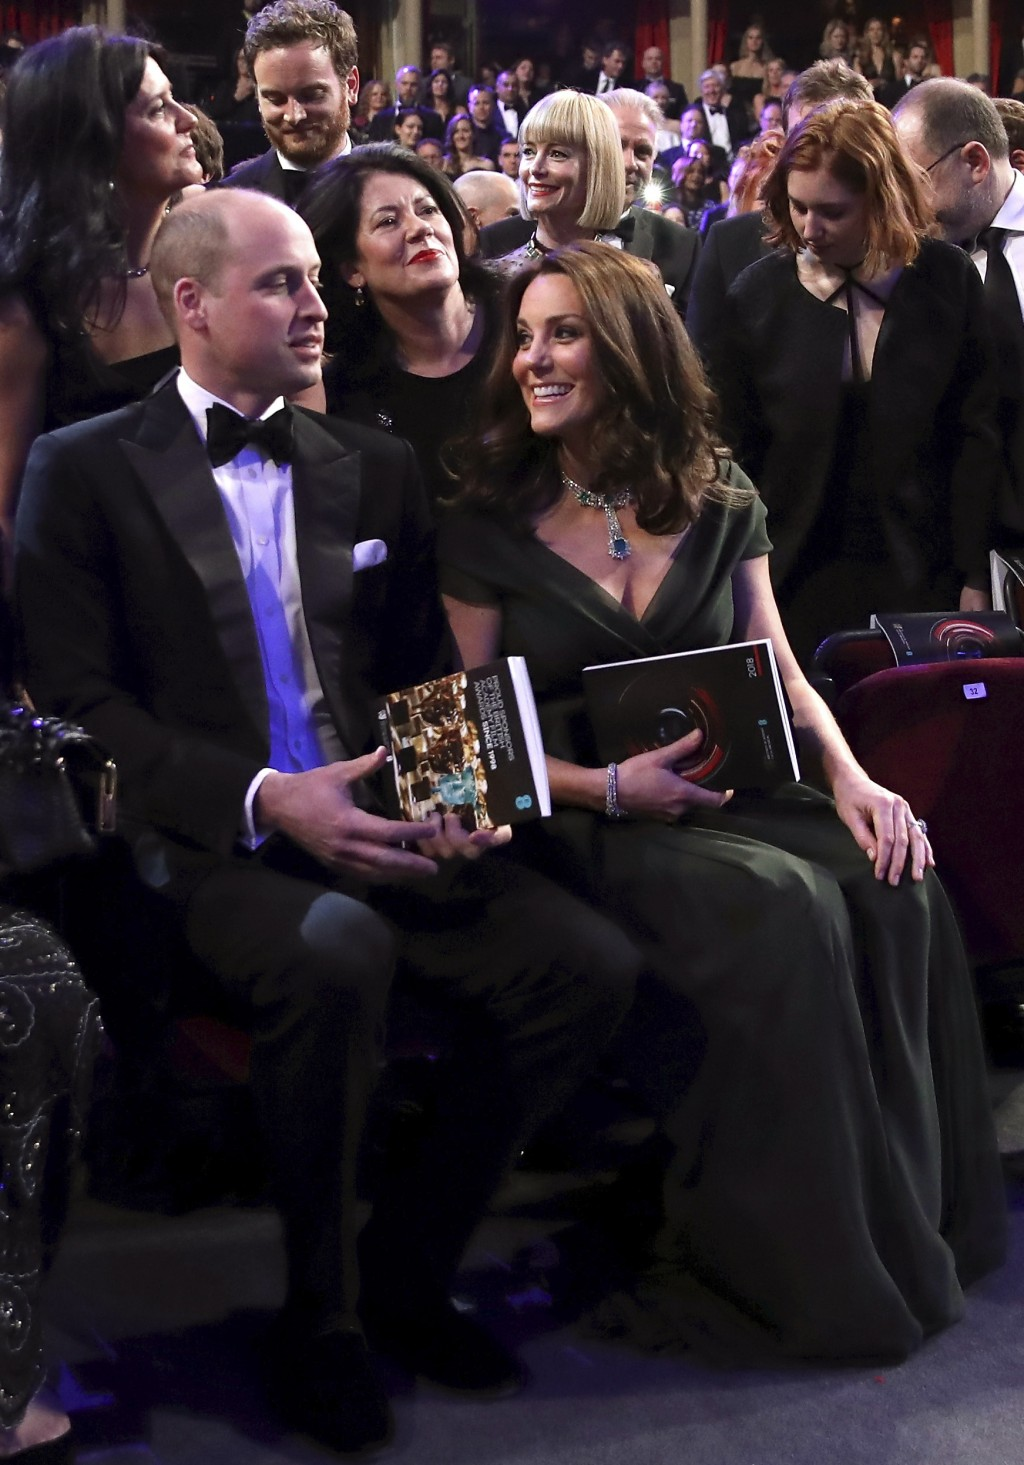 Britain's Prince William and Kate, Duchess of Cambridge attend the BAFTA 2018 Awards in London, Sunday, Feb. 18, 2018. (Chris Jackson/Pool via AP)